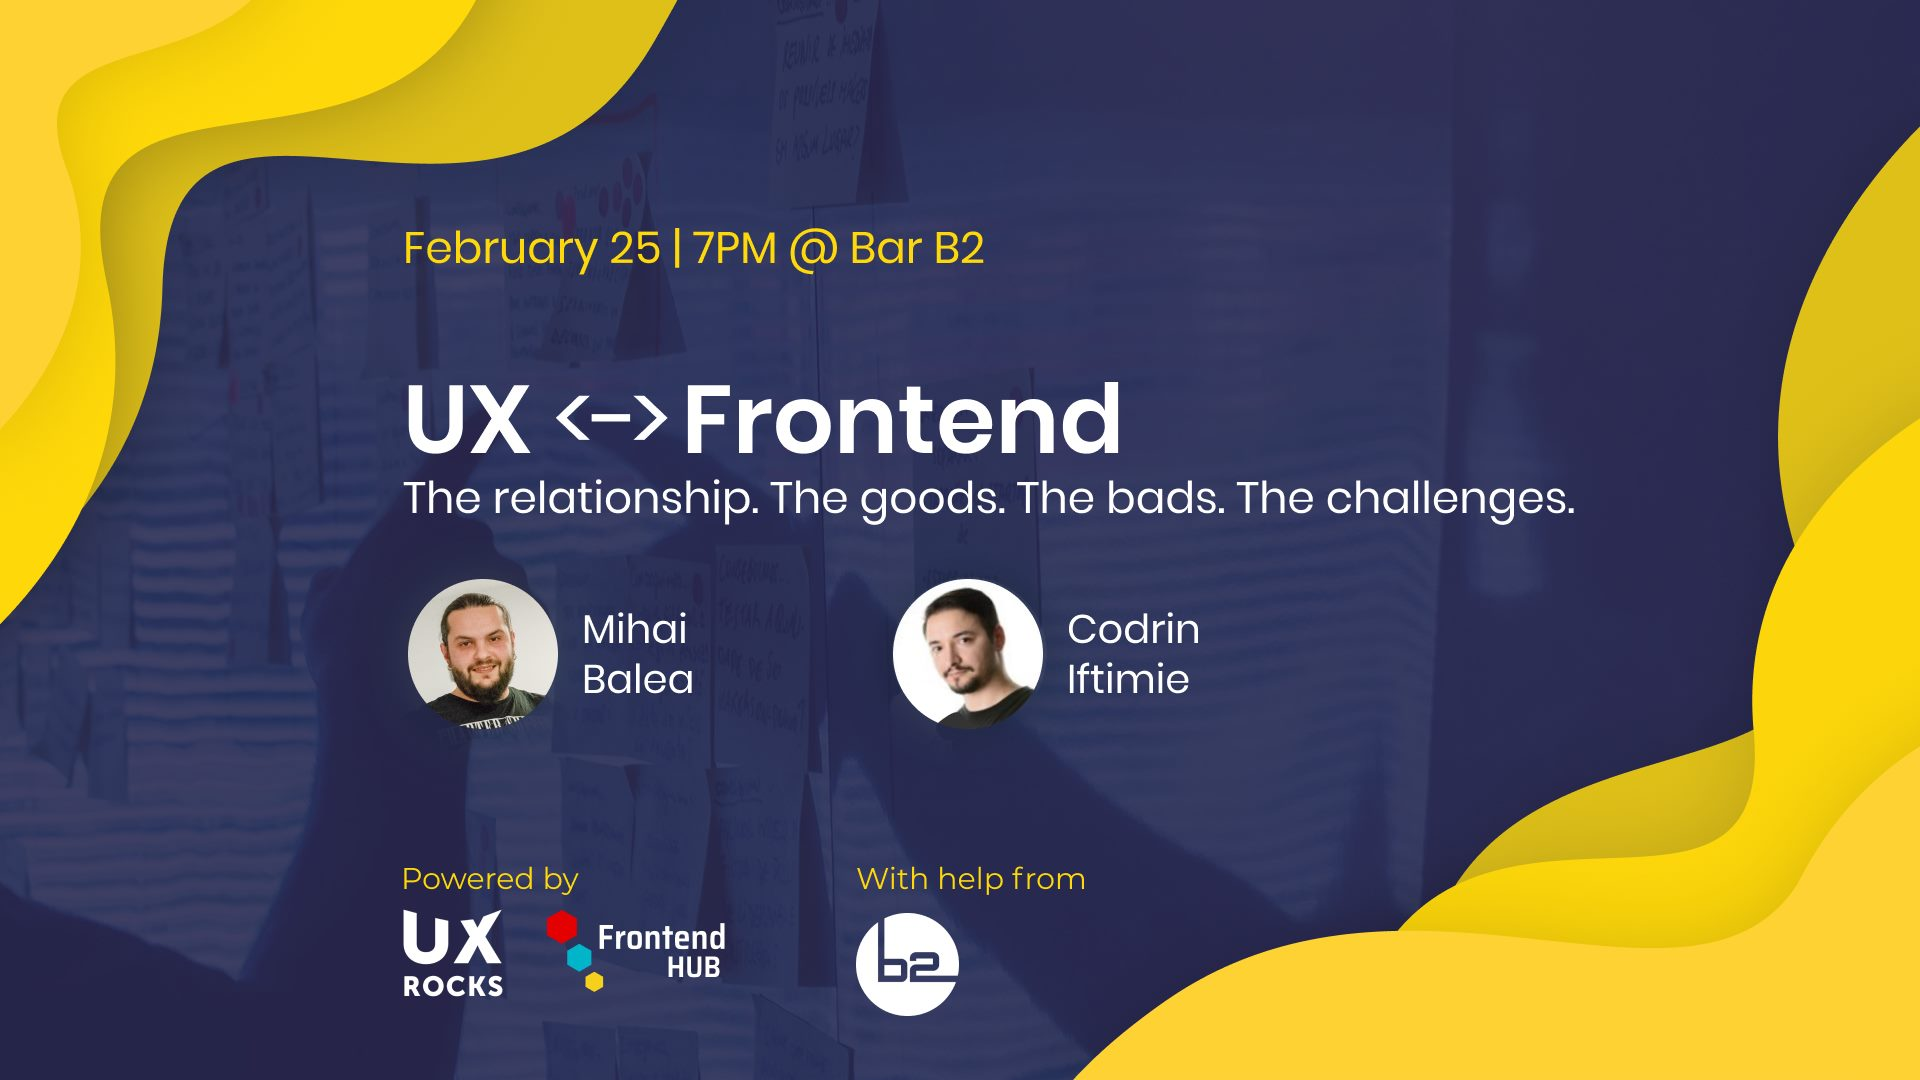 UX <-> Frontend. The relationship.